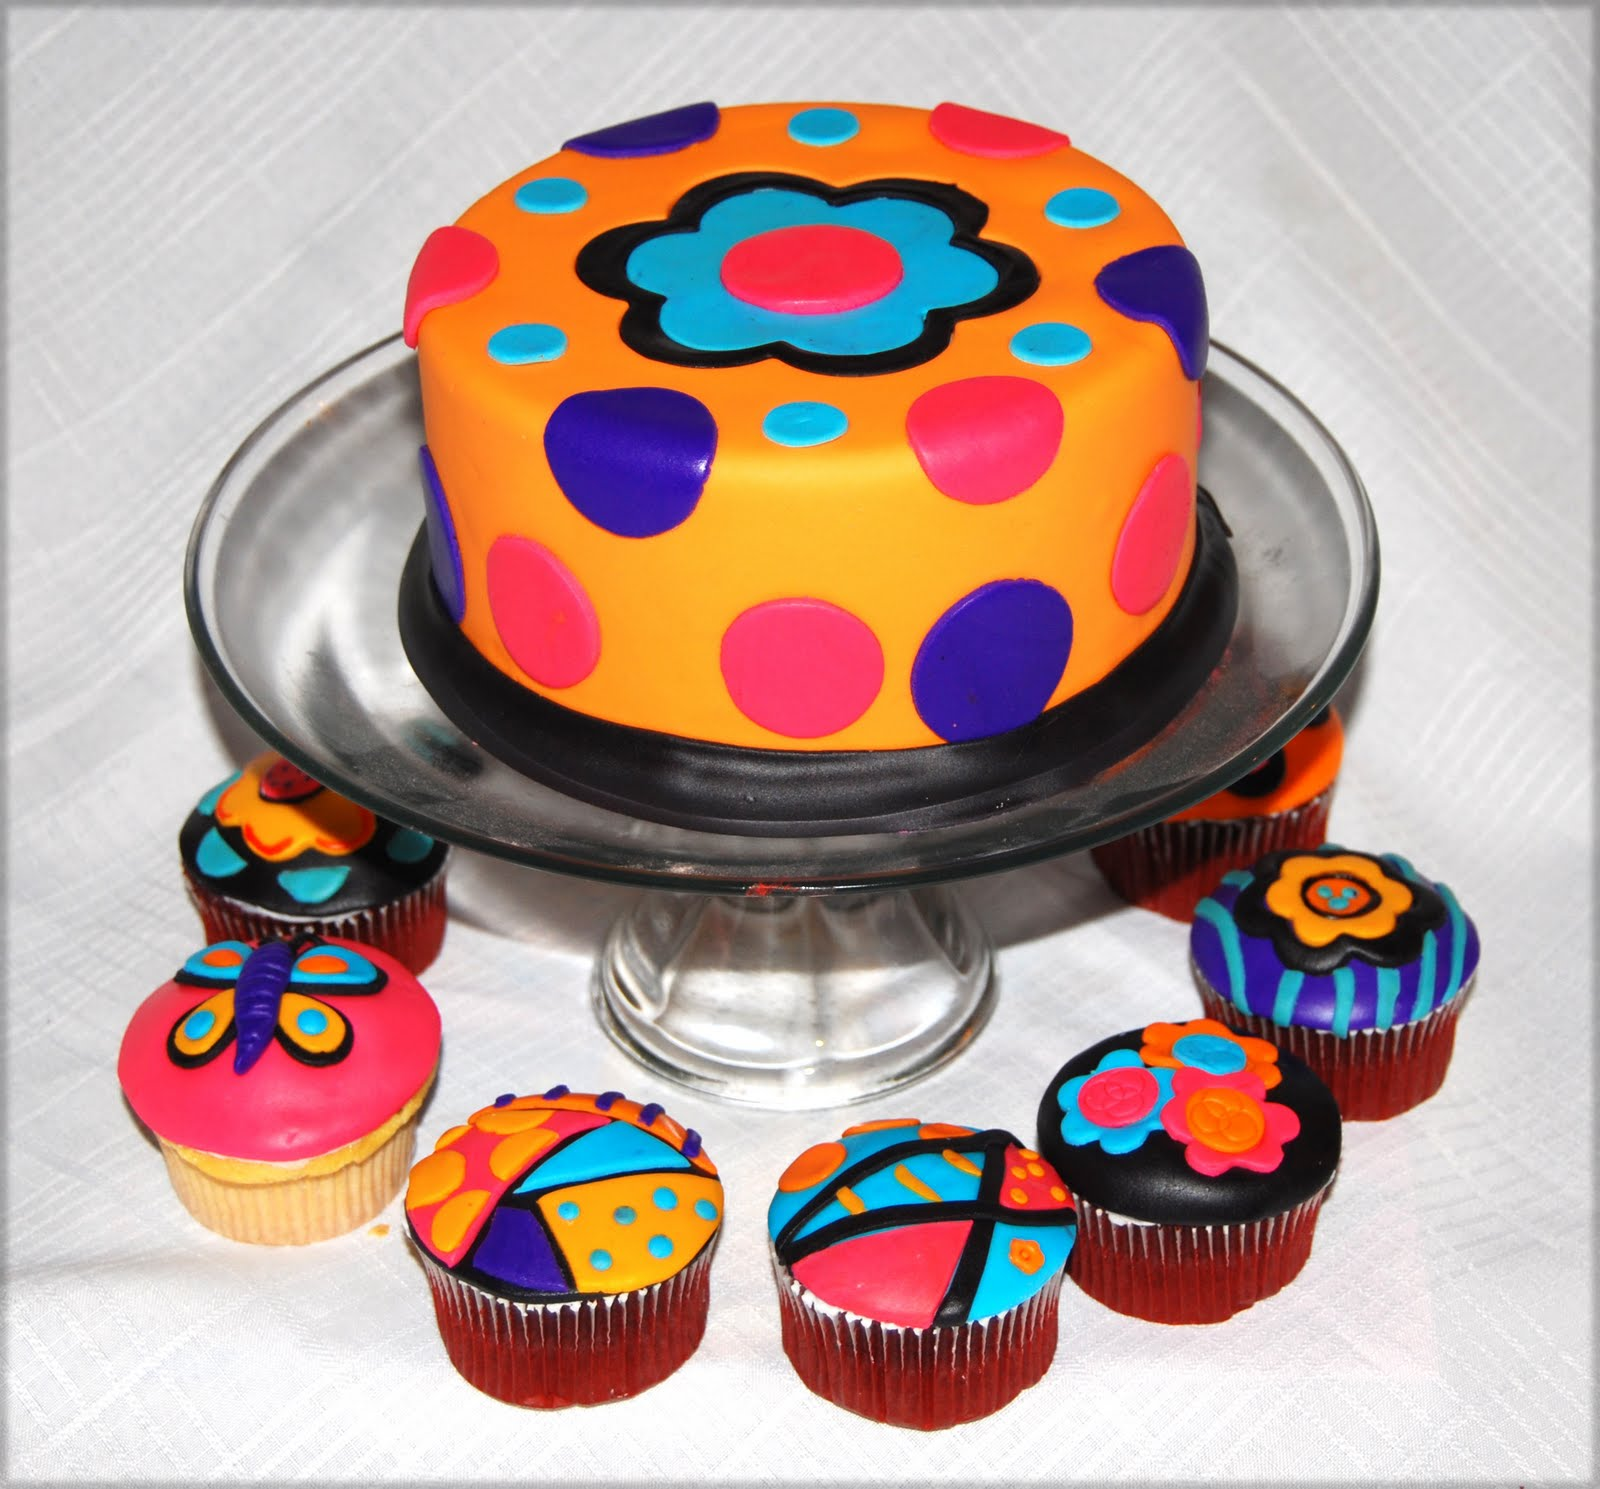 Leelees Cake-abilities: Pop Art Inspired Cake And Cupcakes